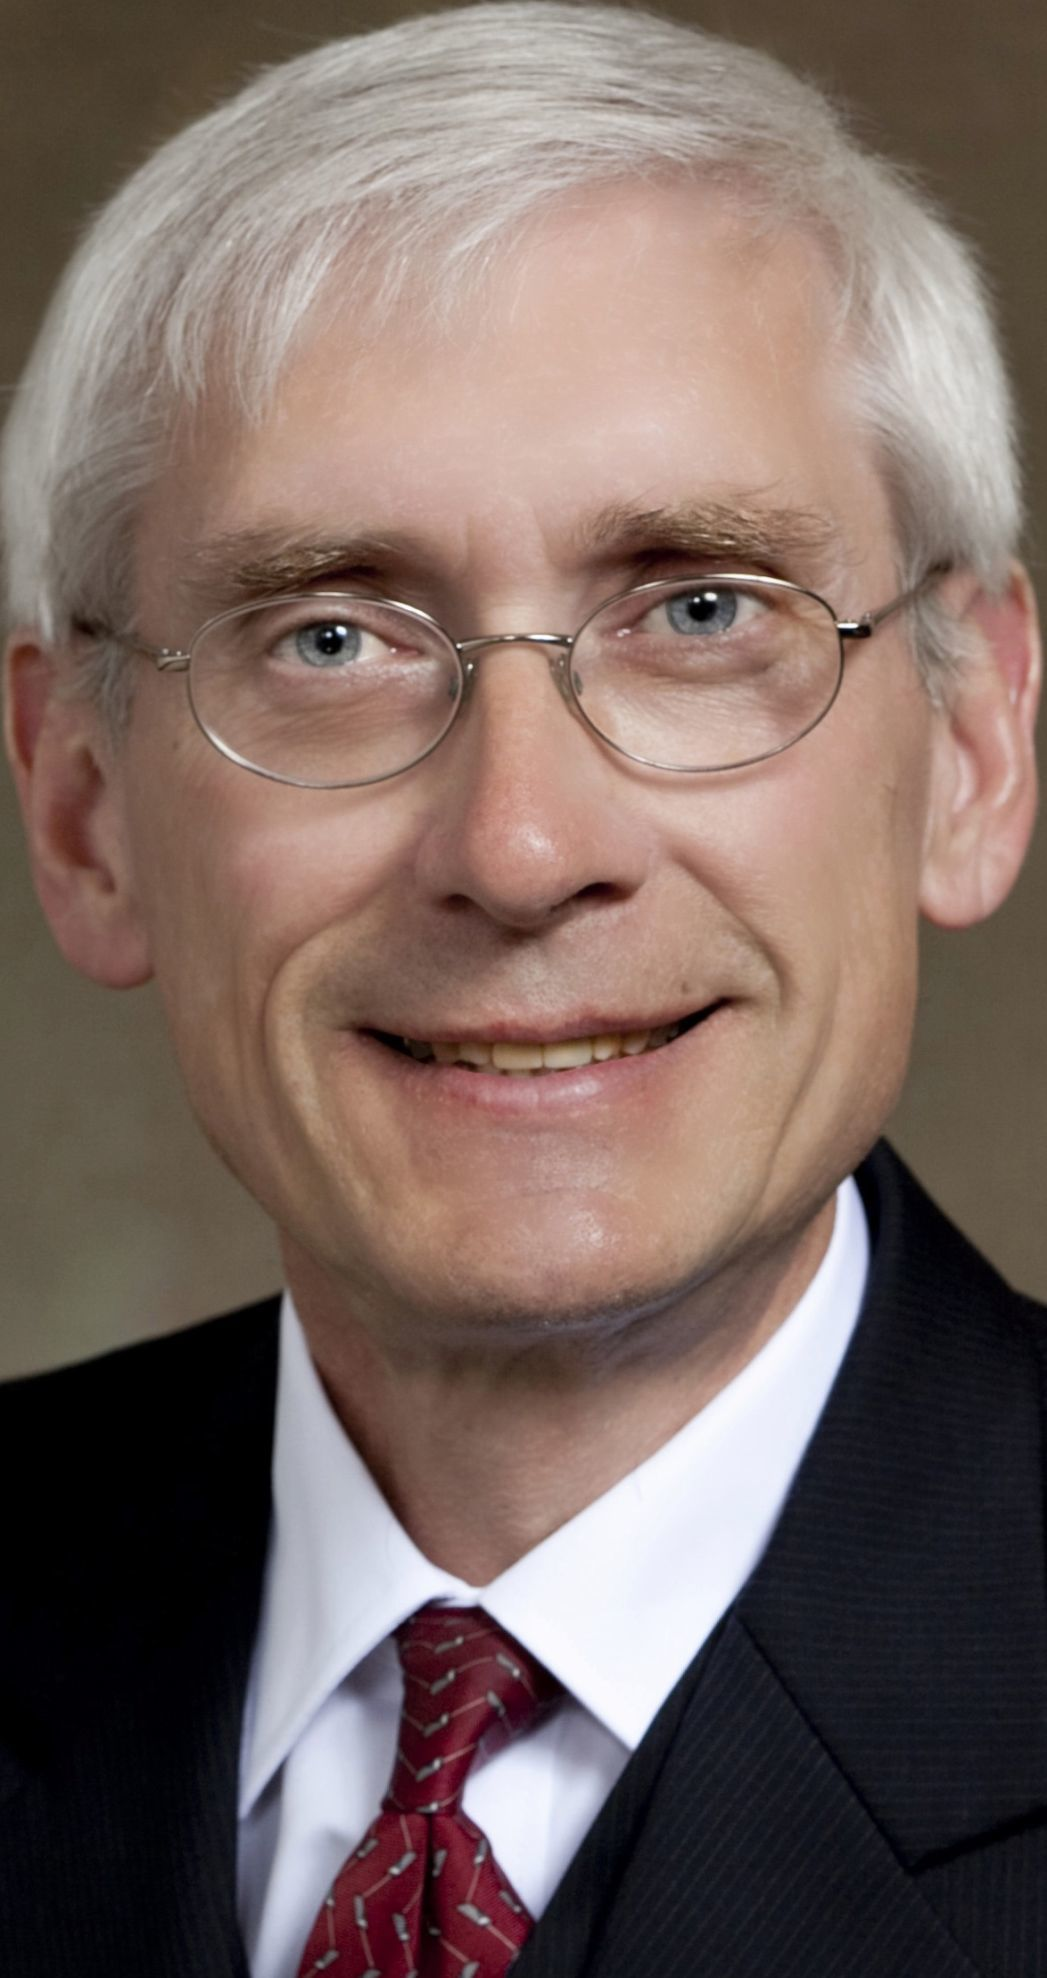 Tony Evers.jpg (copy) (copy)